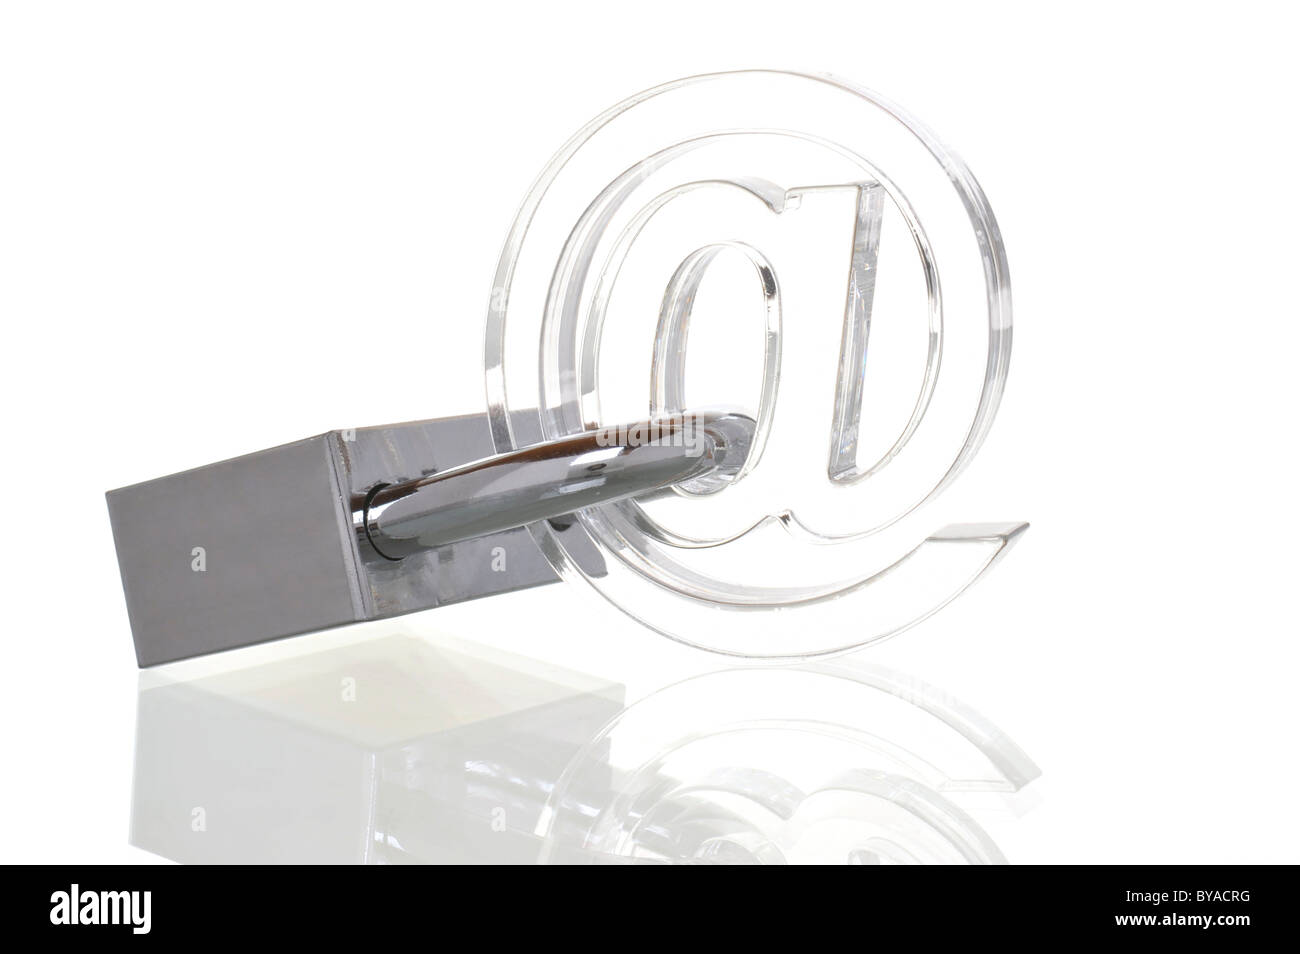 Transparent at sign with padlock, symbolic image for internet security - Stock Image